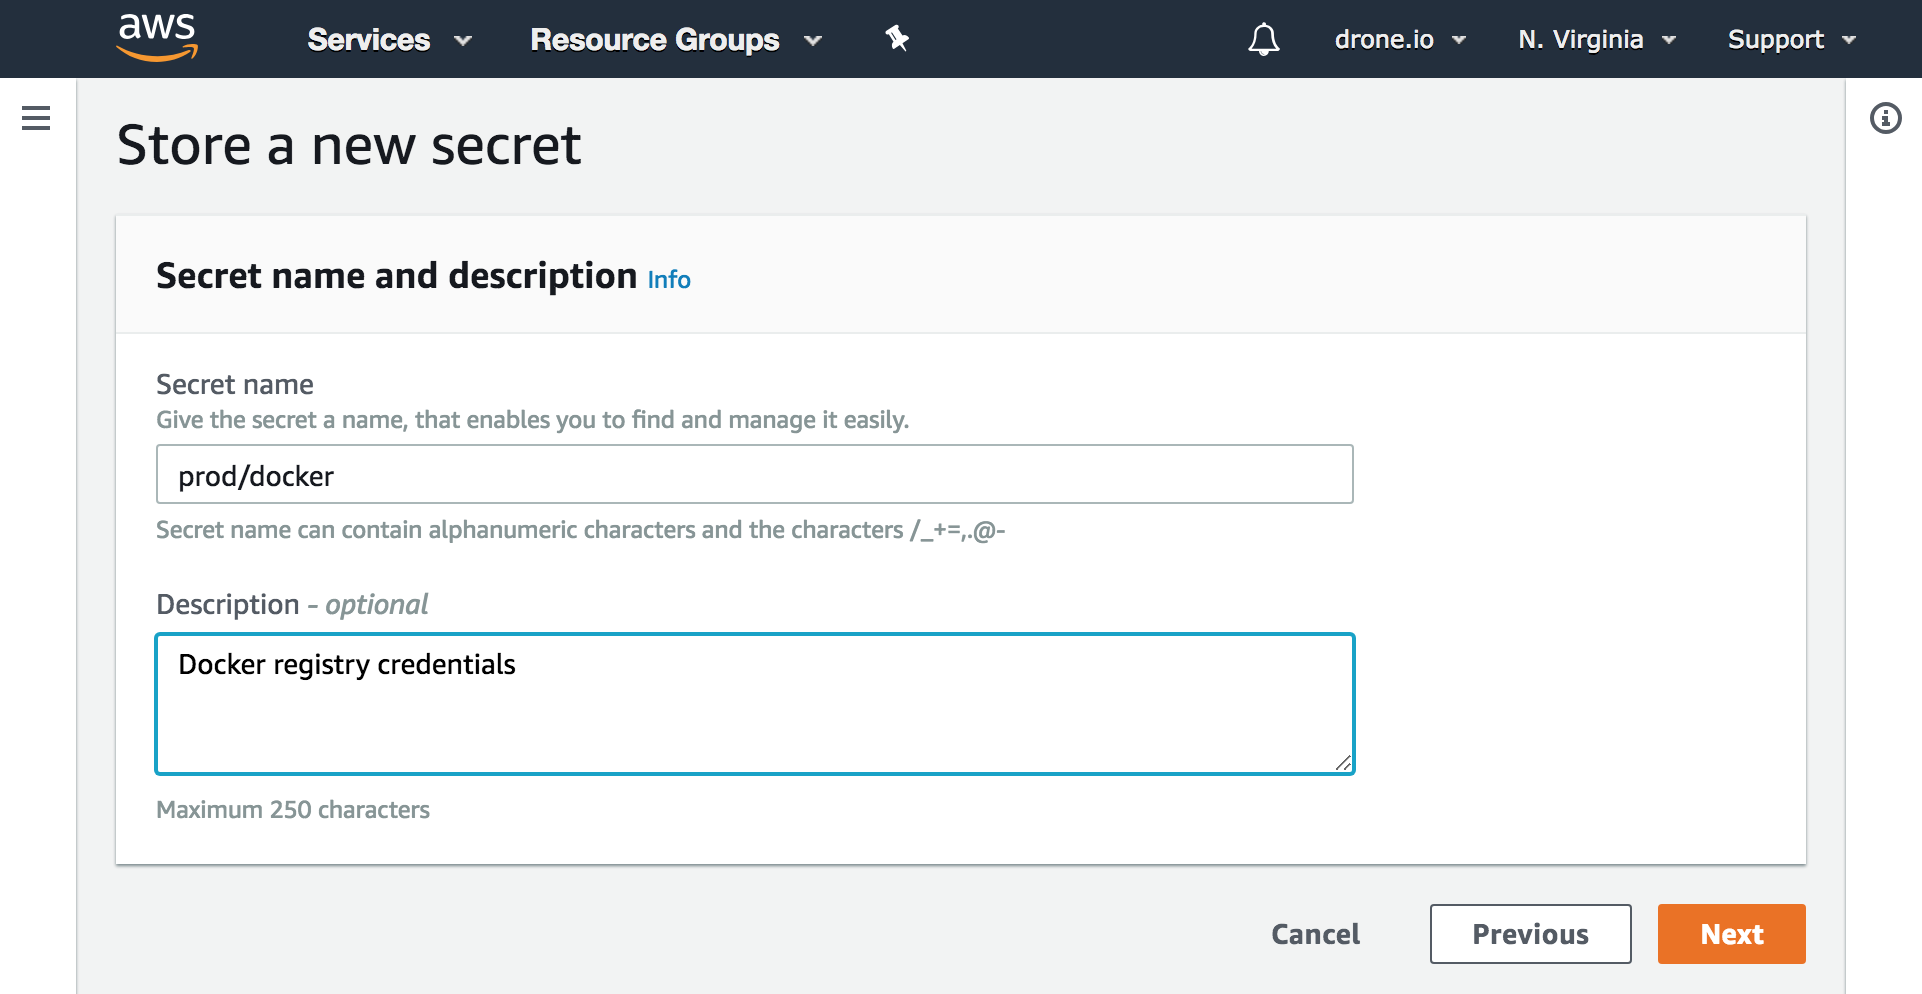 Drone Integration with the AWS Secrets Manager